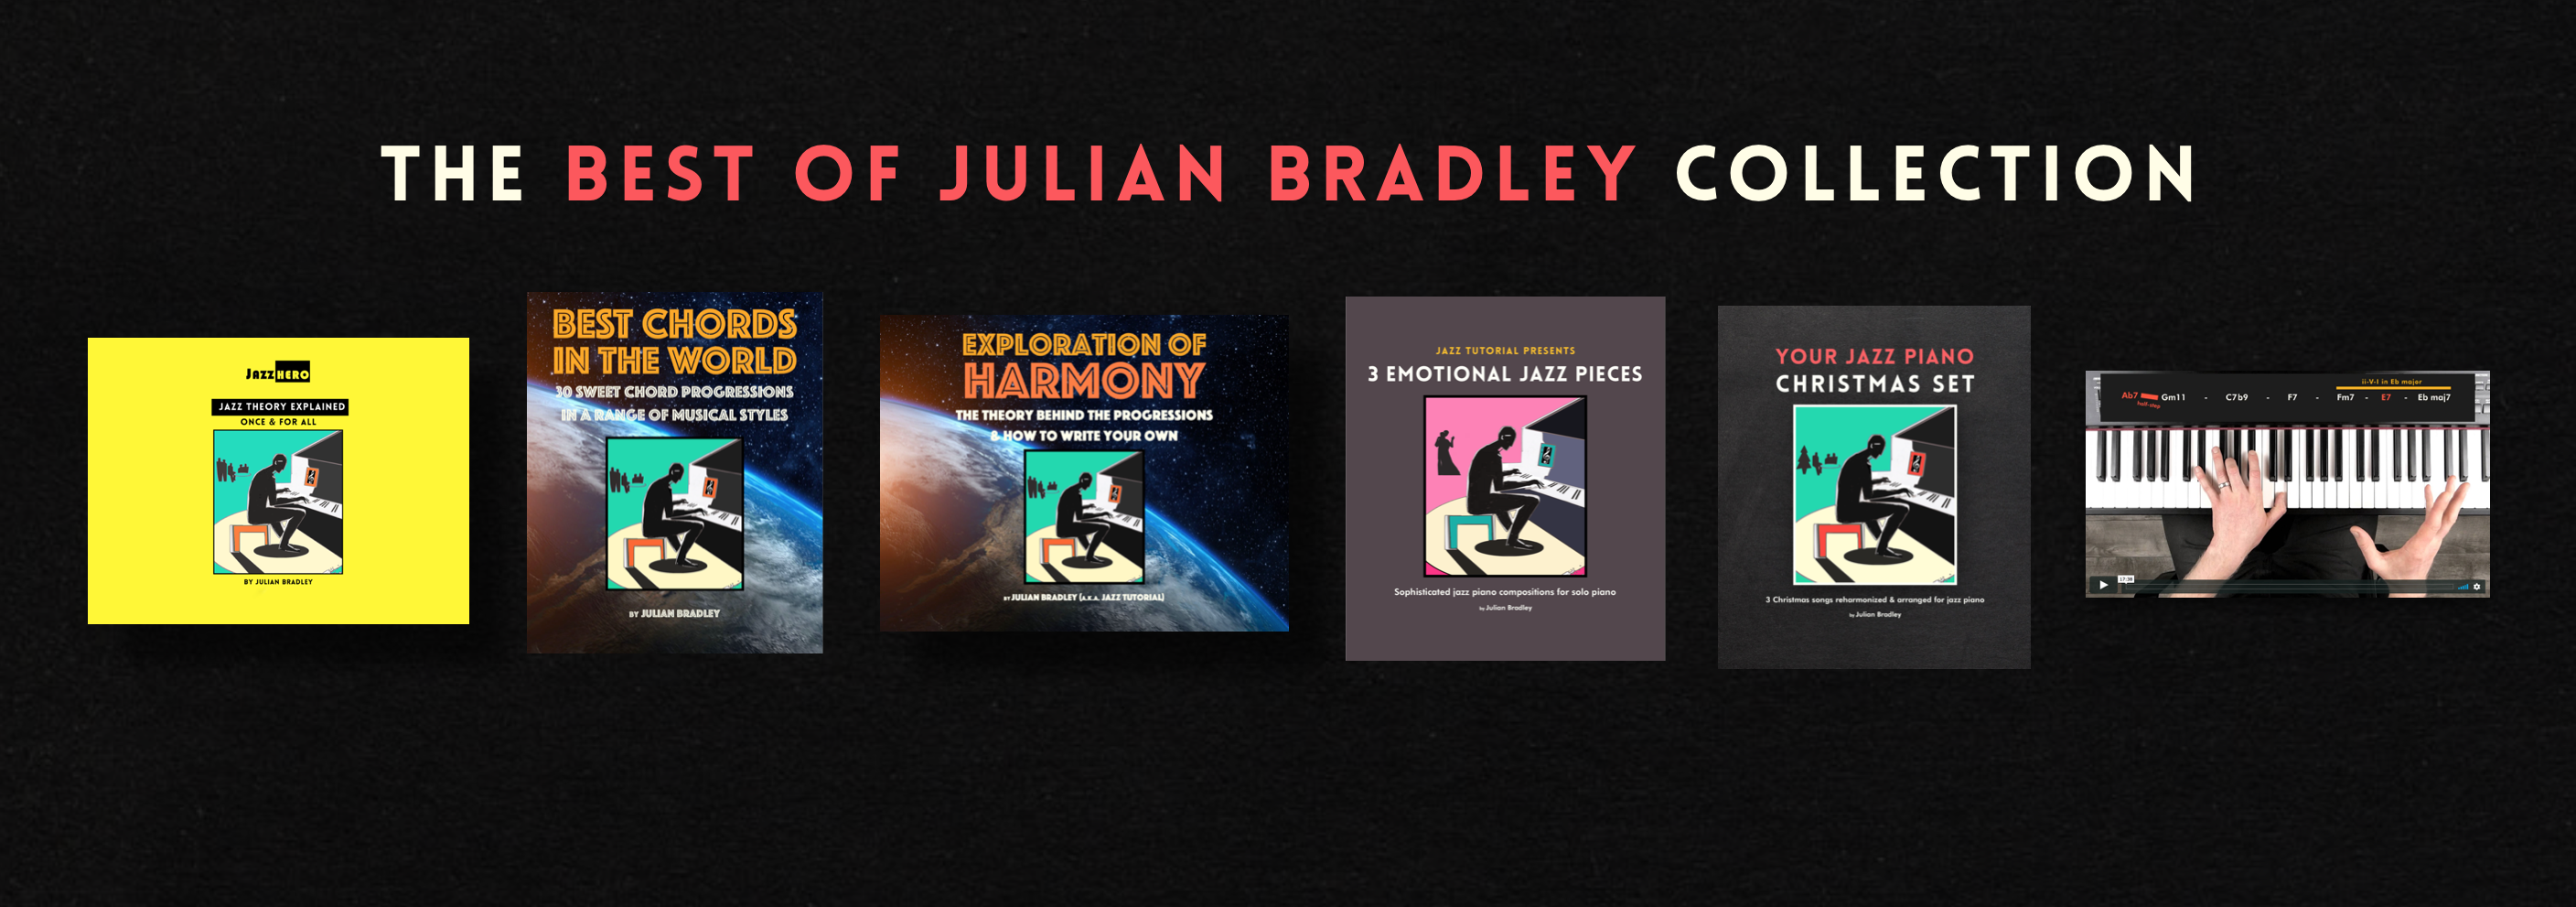 best of julian bradley jazz collection